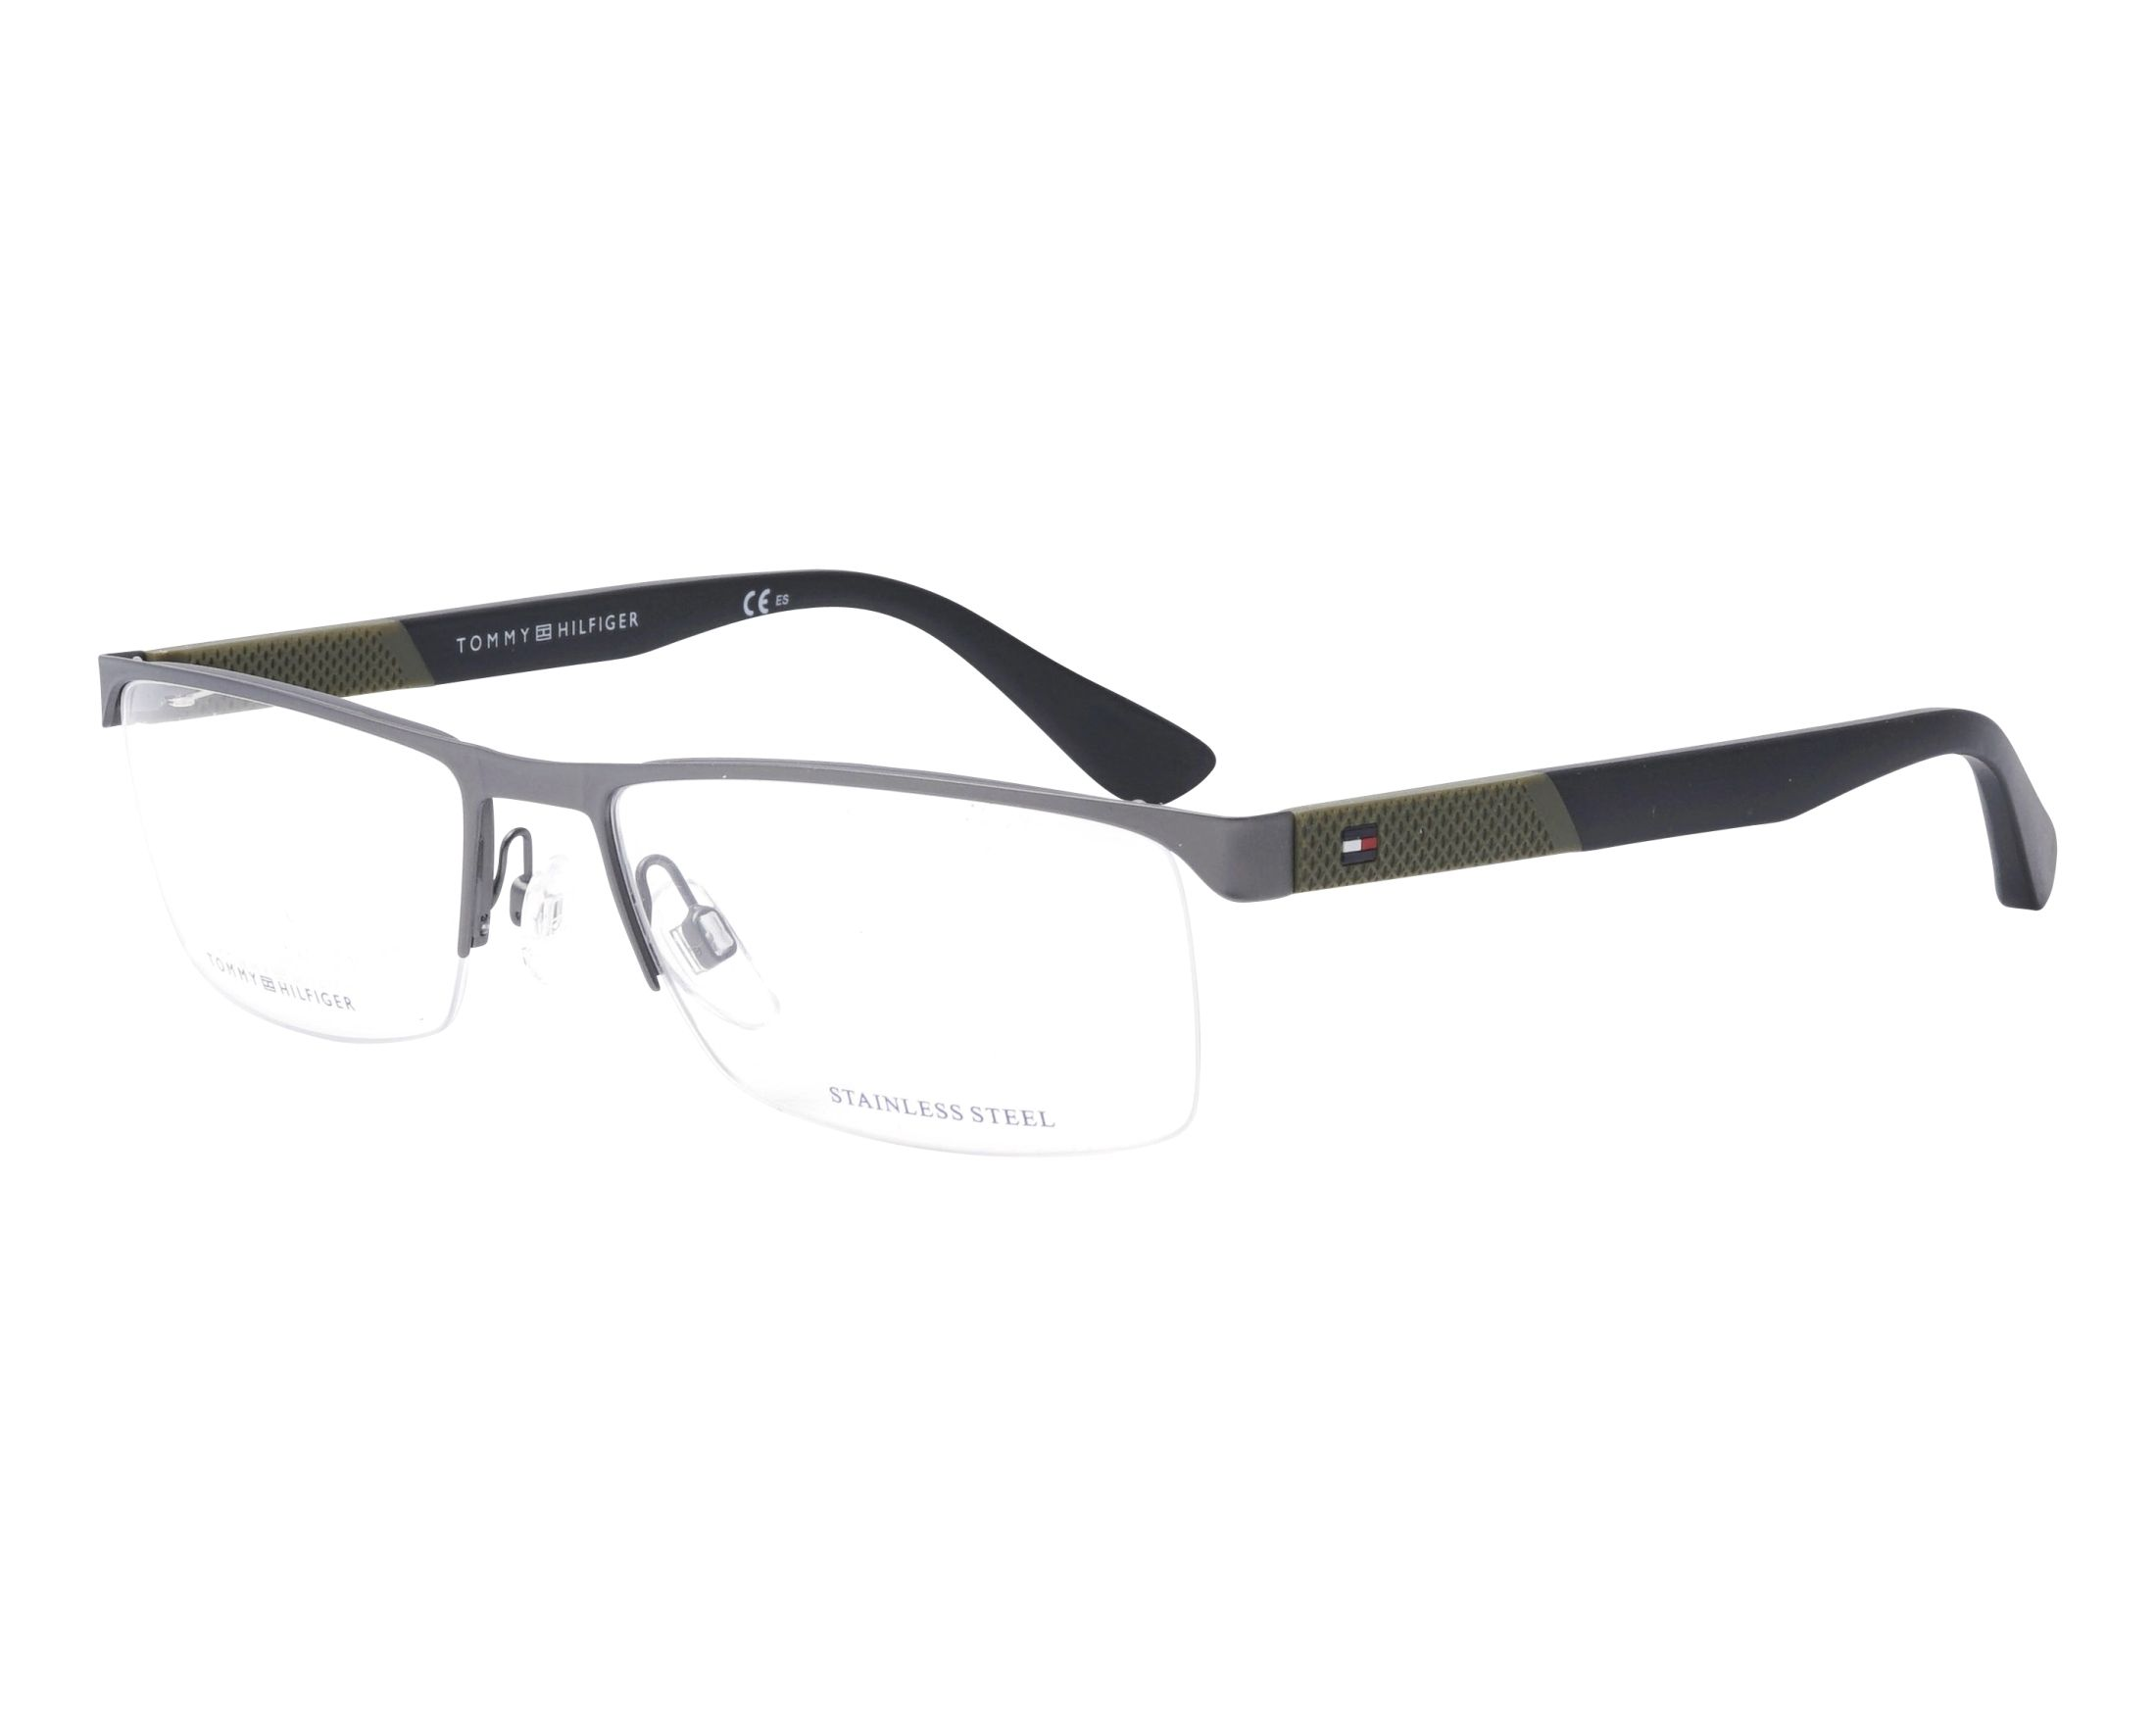 eyeglasses Tommy Hilfiger TH-1562 R80 56-17 Gun Black profile view